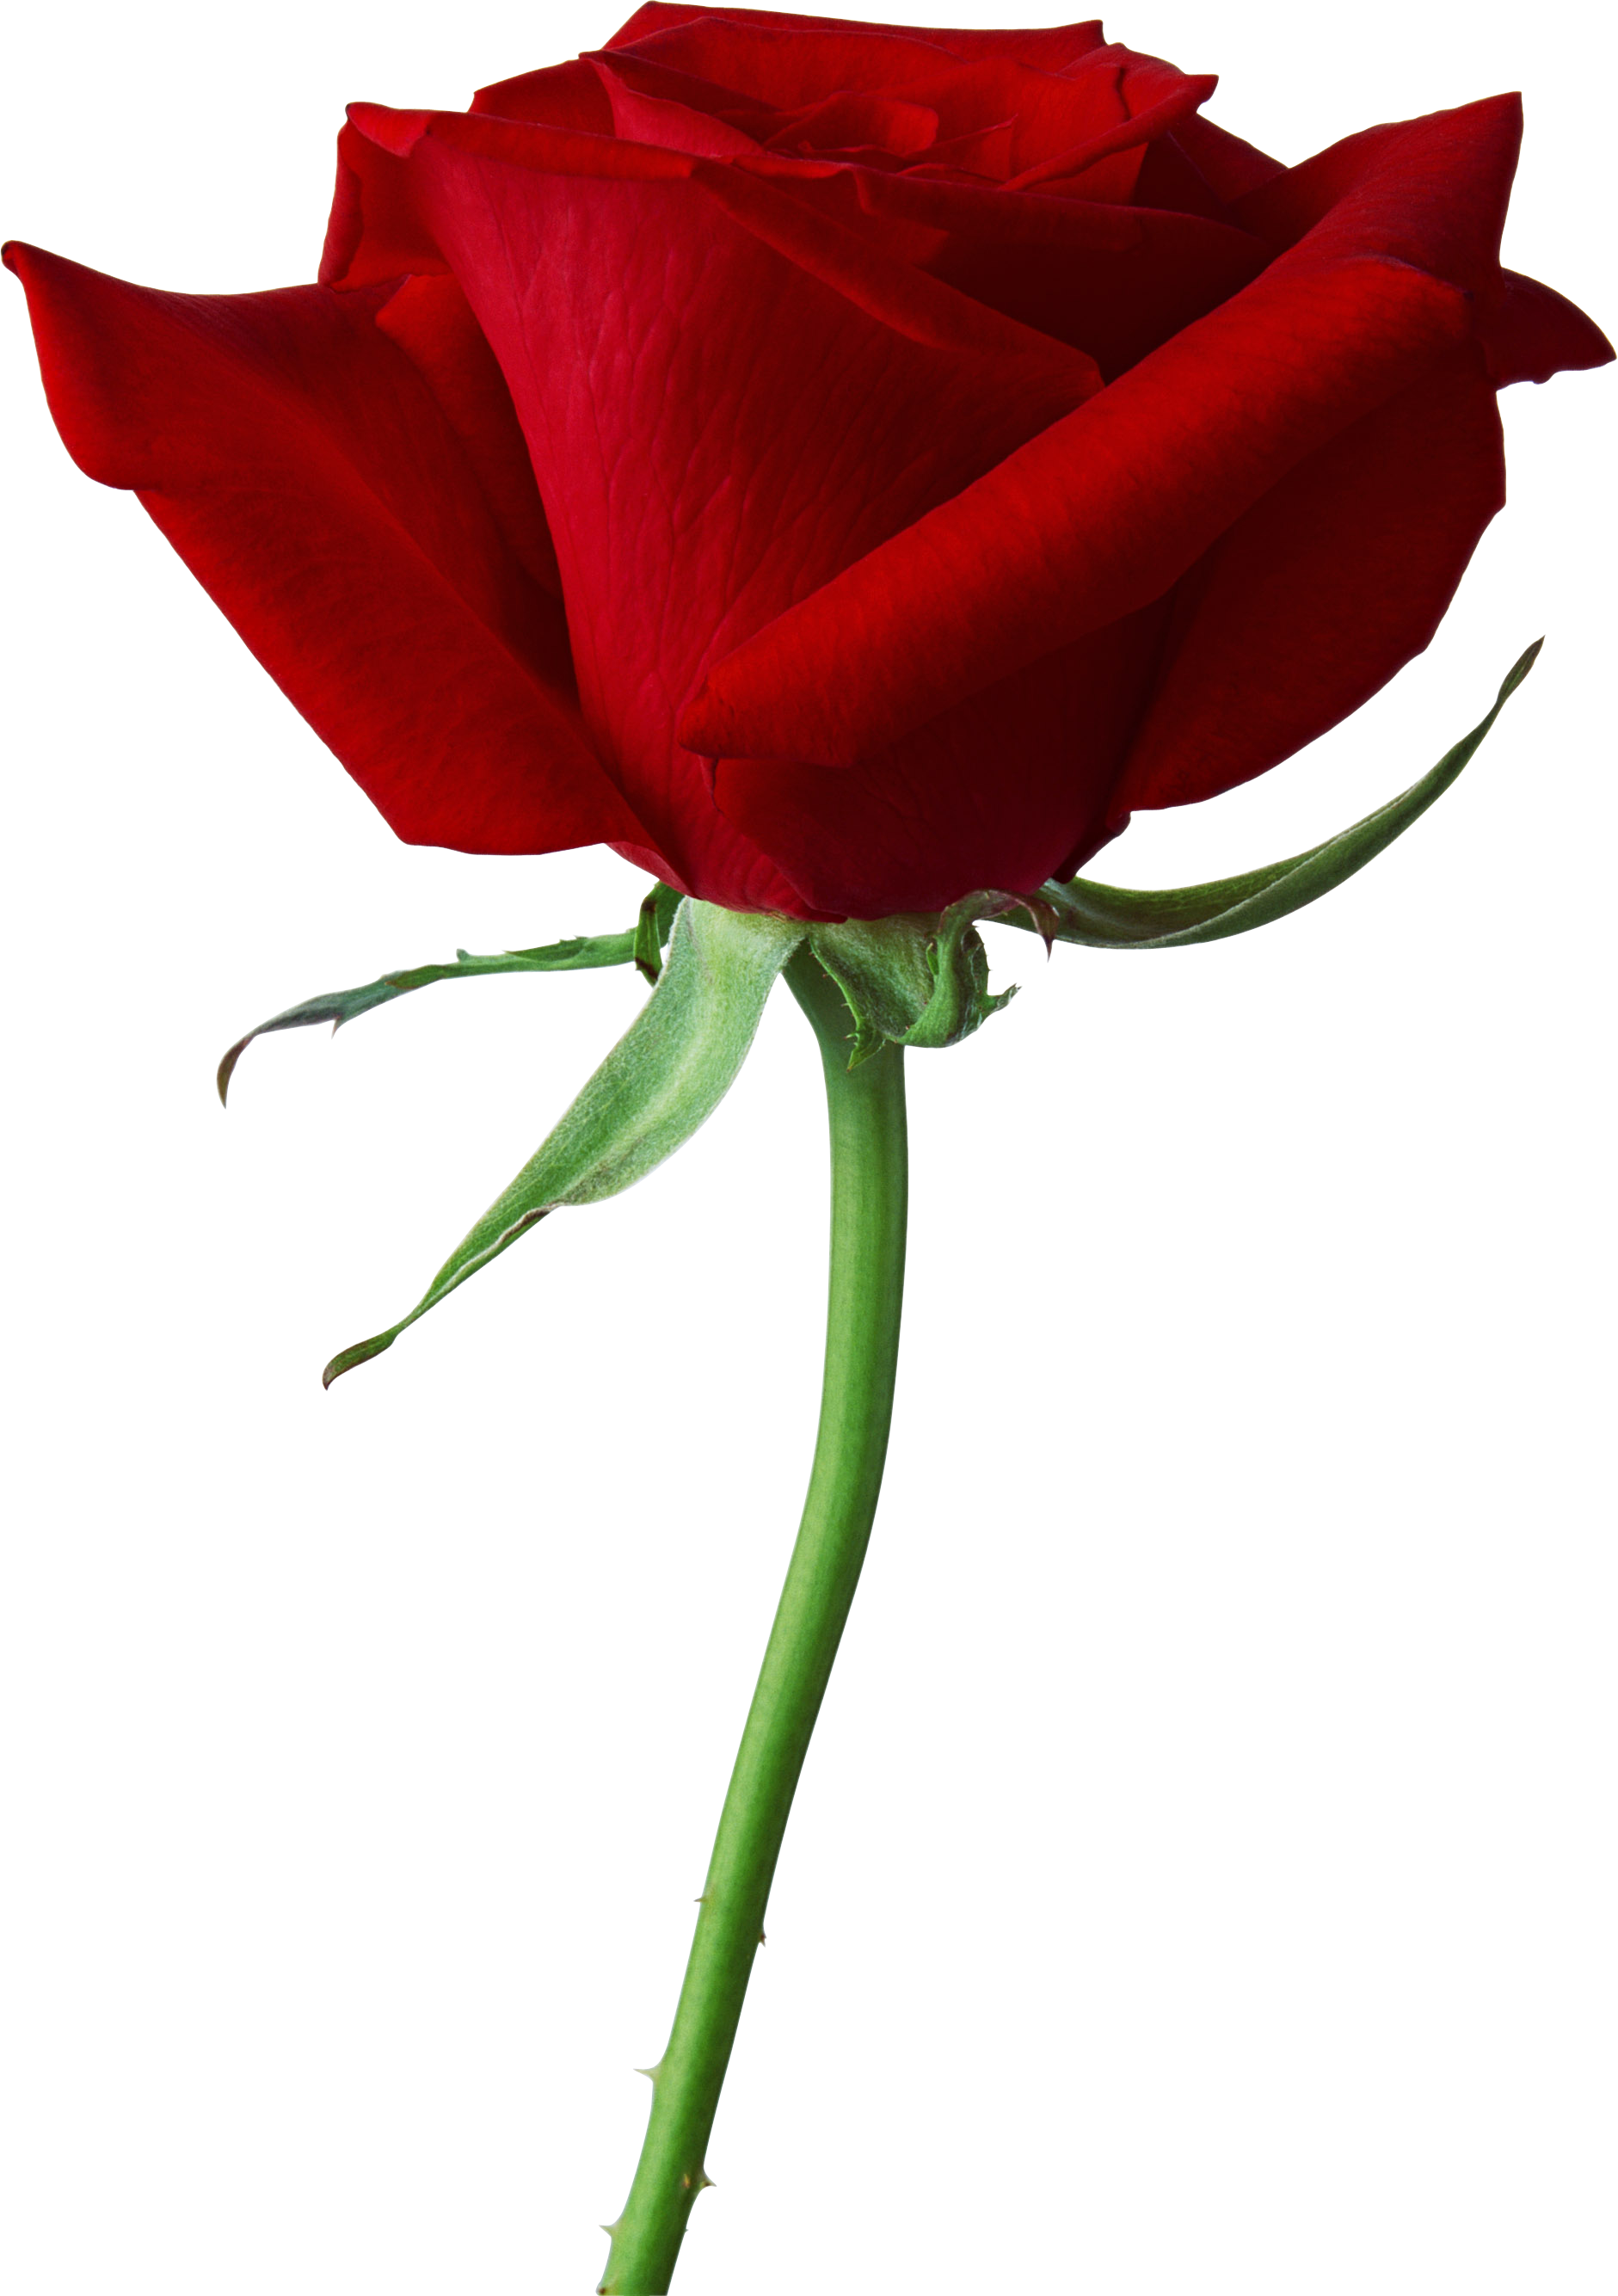 Rose png image, free picture download - Rose HD PNG